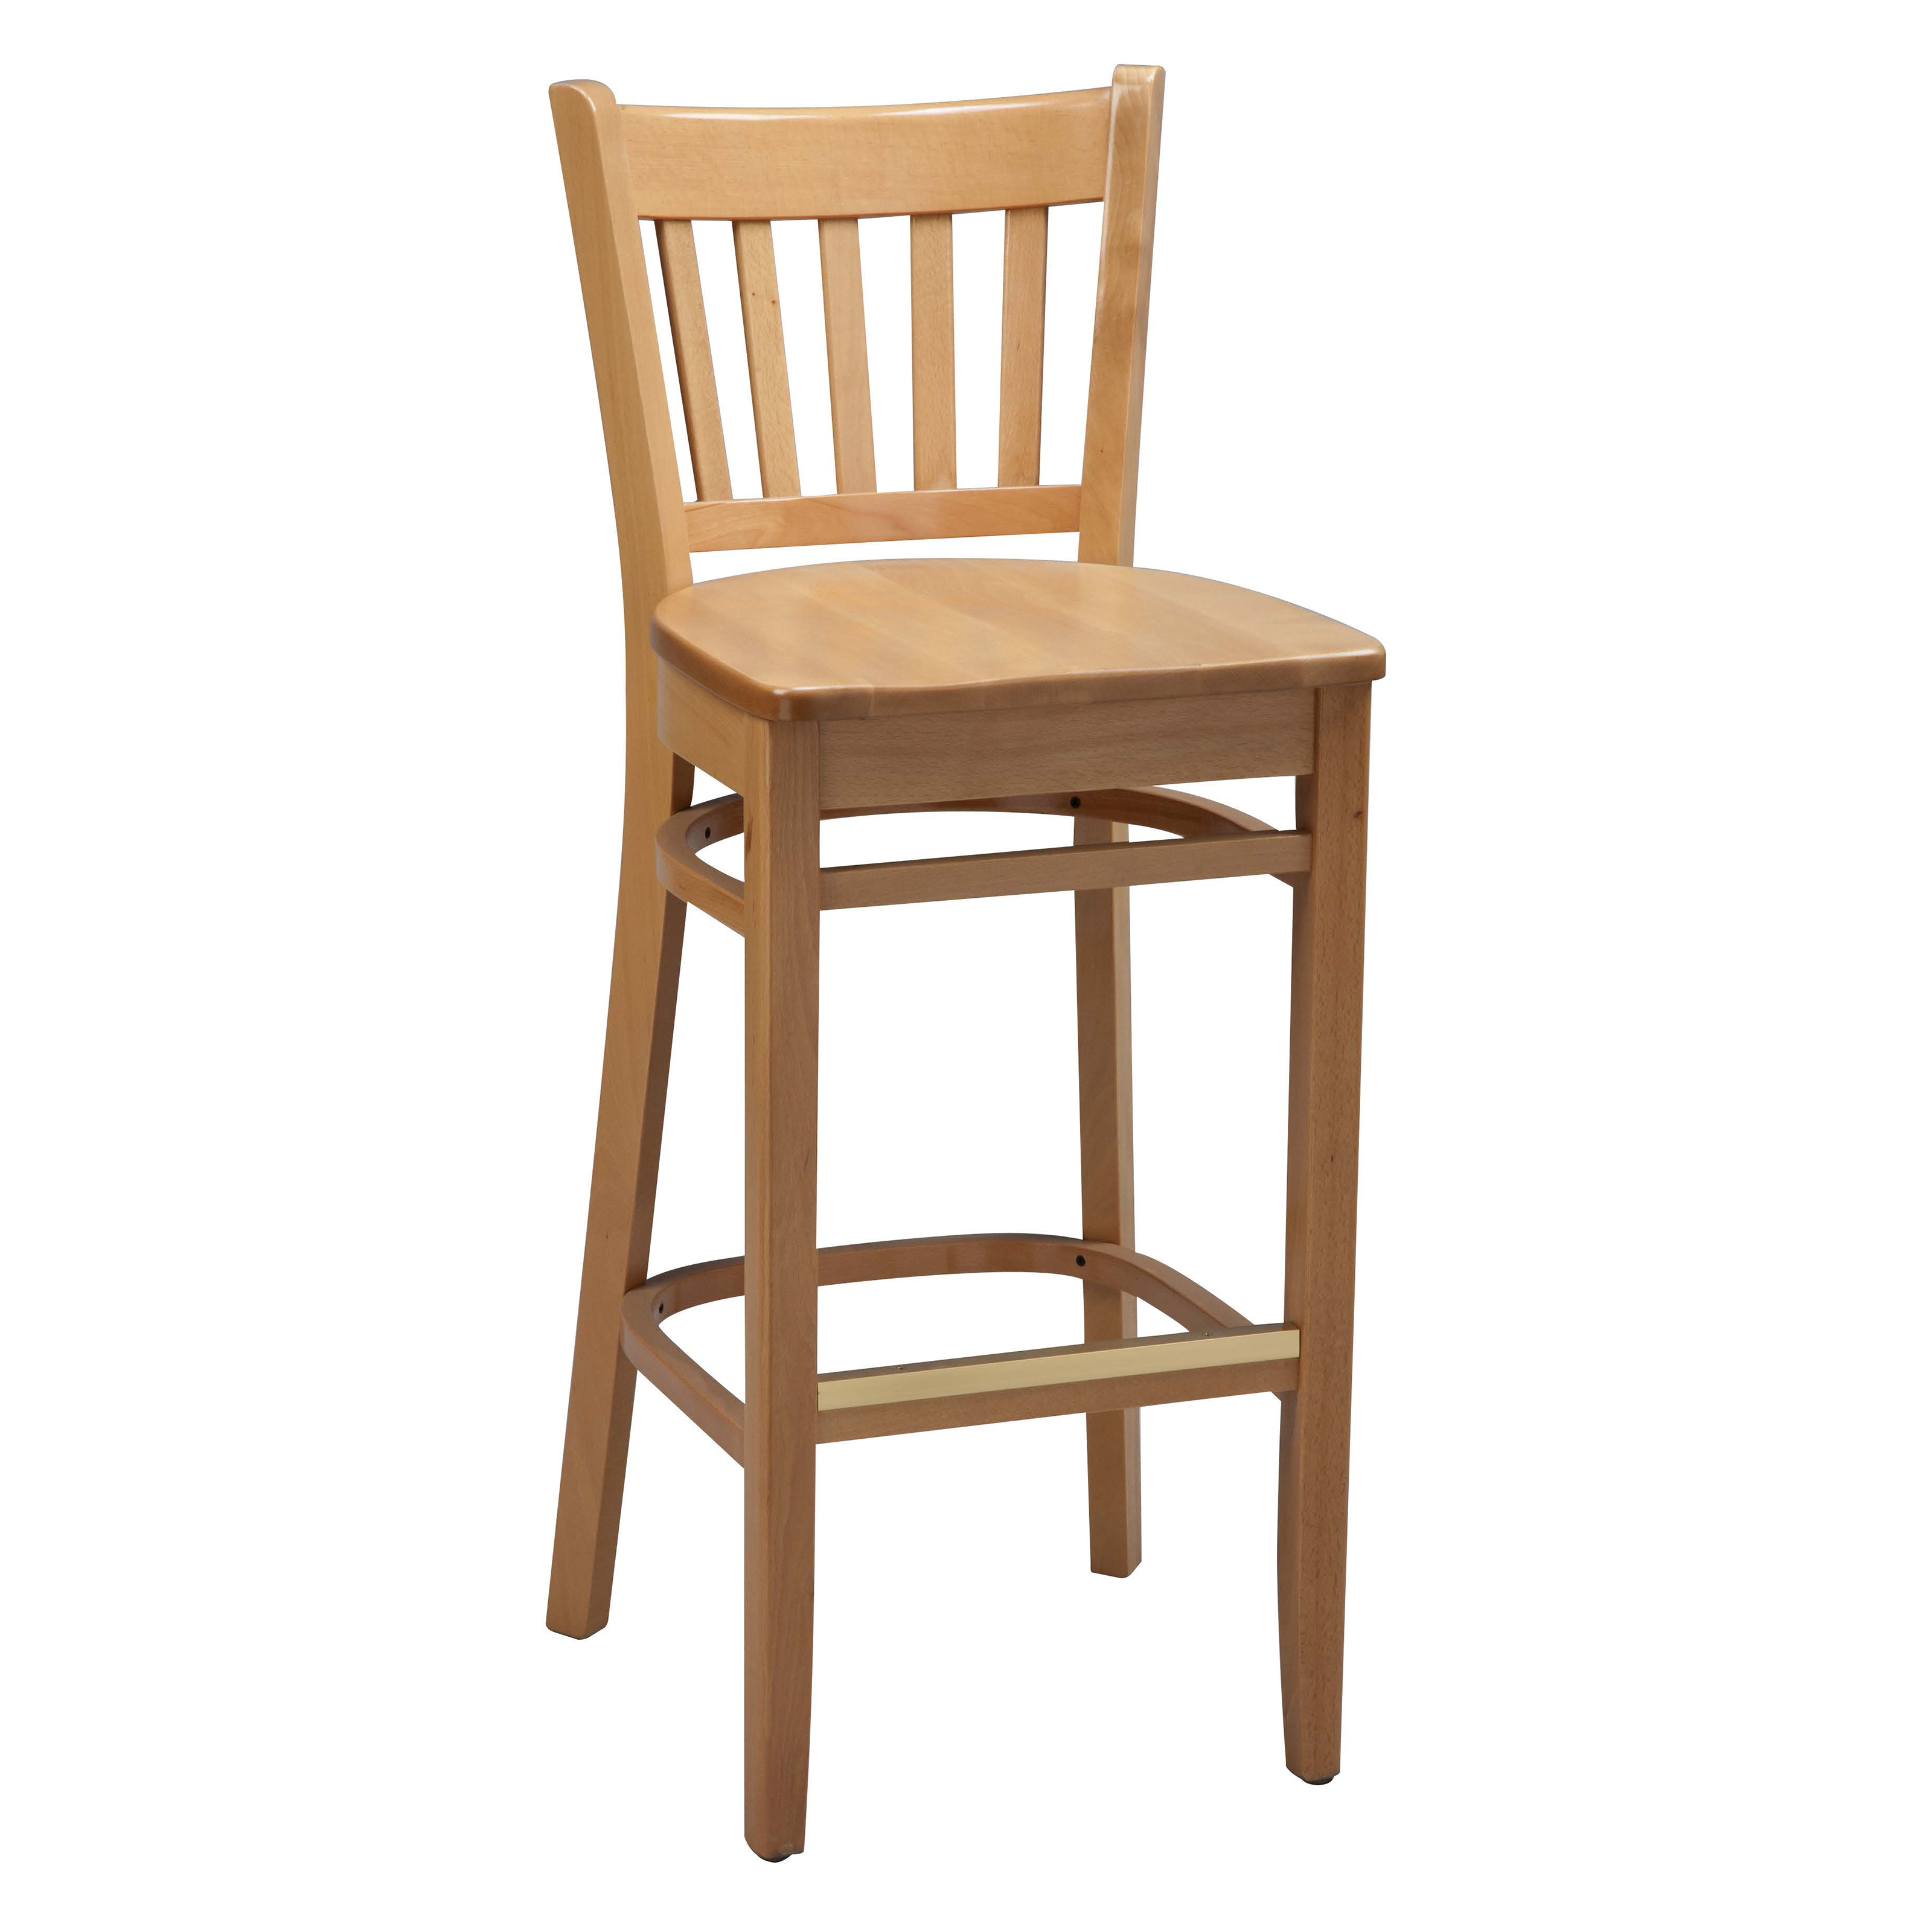 Regal Beechwood 30 In Vertical Slat Bar Stool With Wood